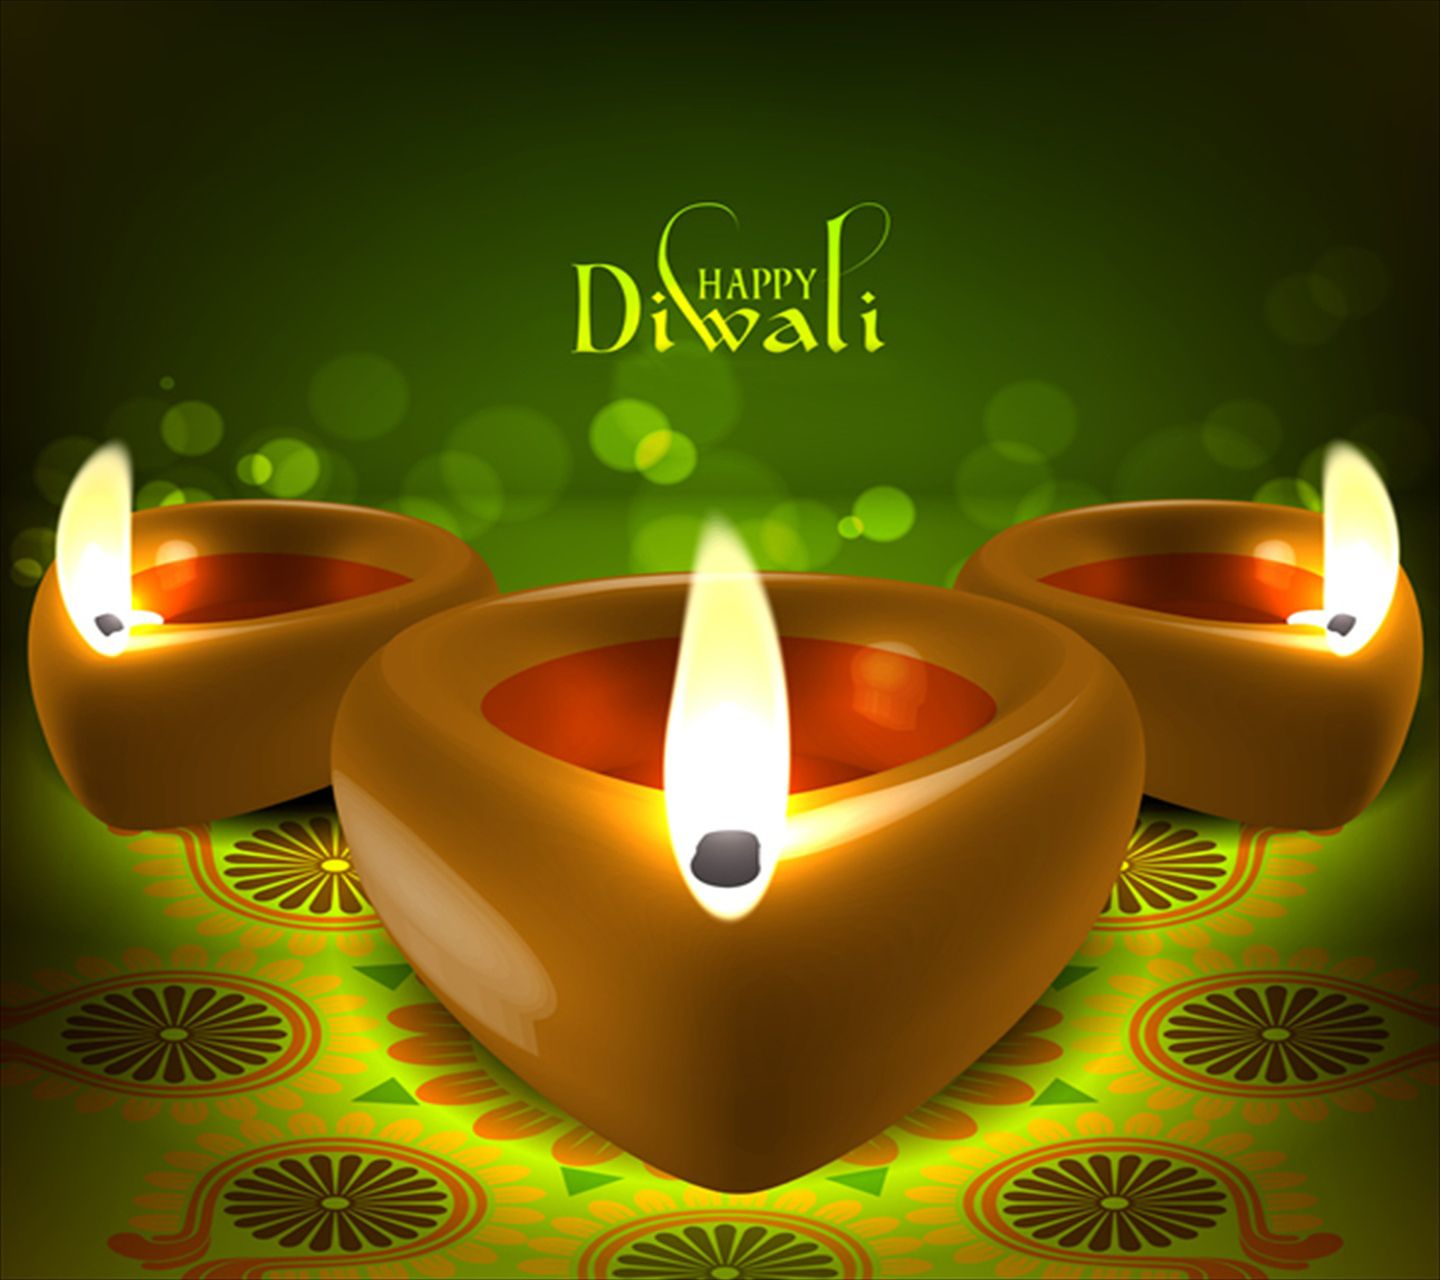 Click here to download in hd format download happy diwali click here to download in hd format download happy diwali wallpaper http kristyandbryce Image collections